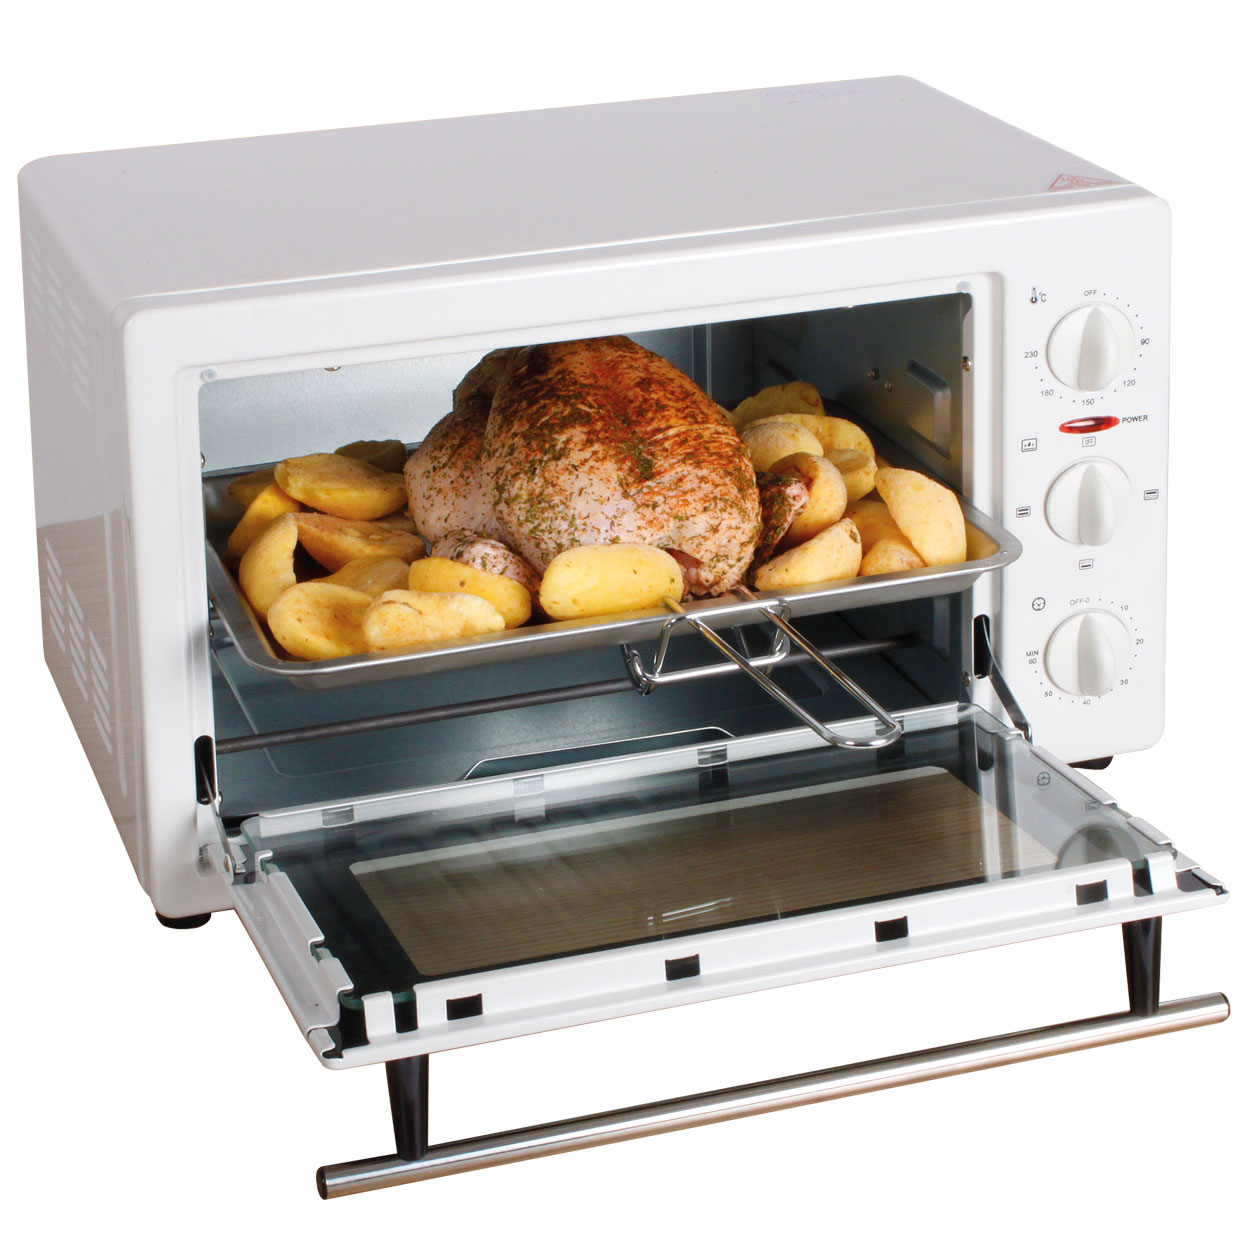 Image of White 22 Litre Oven